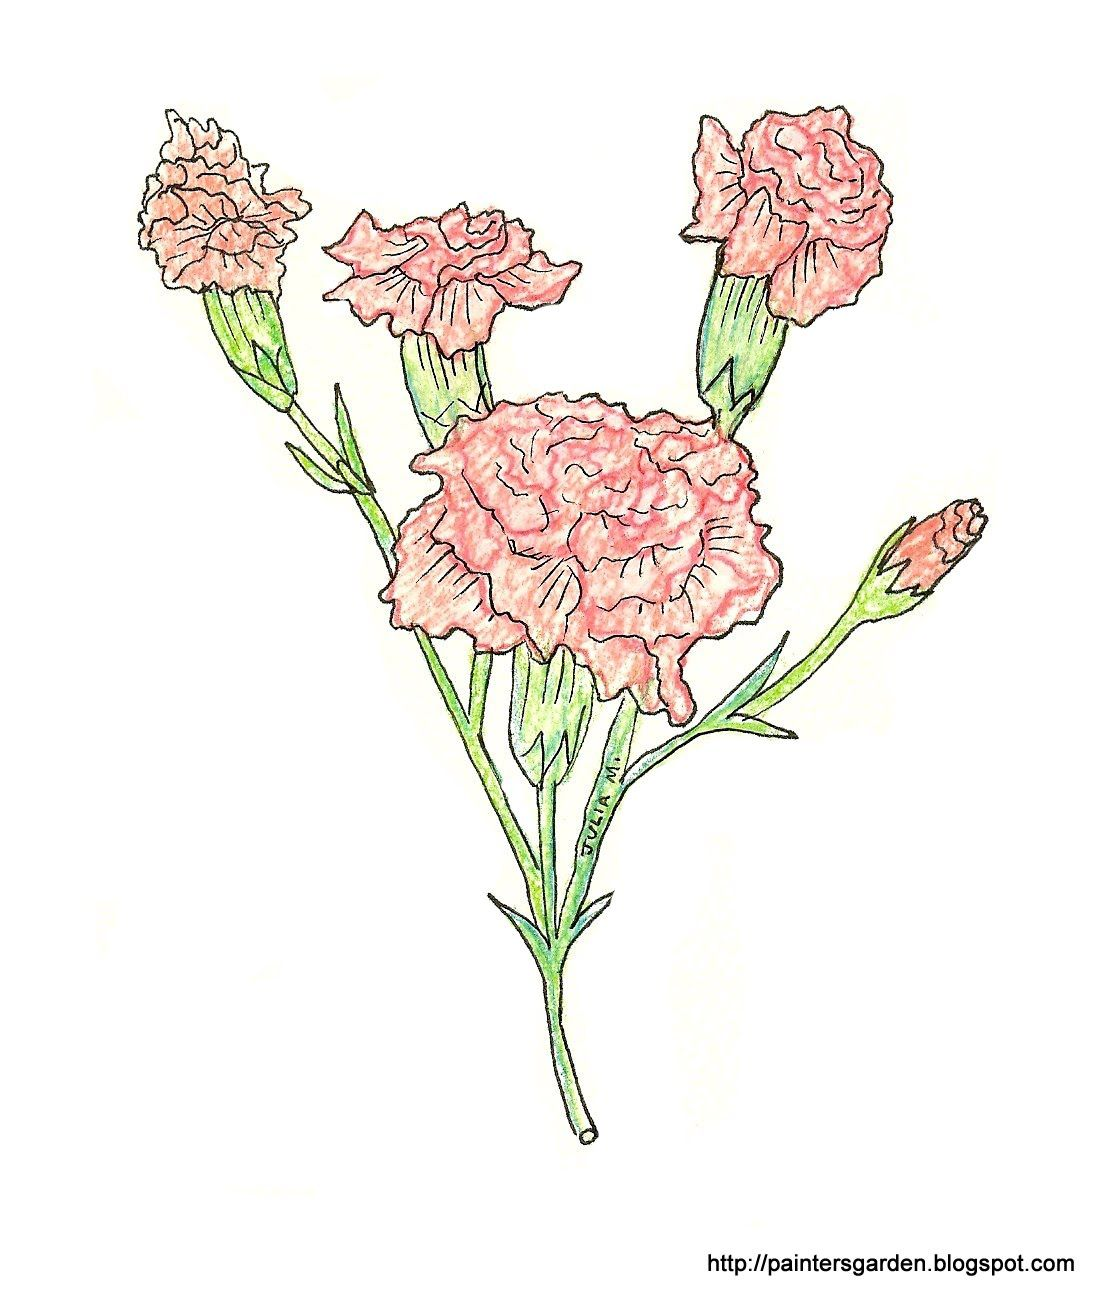 835998032 1106x1303 Paintersgarden Carnation Drawing, Colored Pencil And Ink